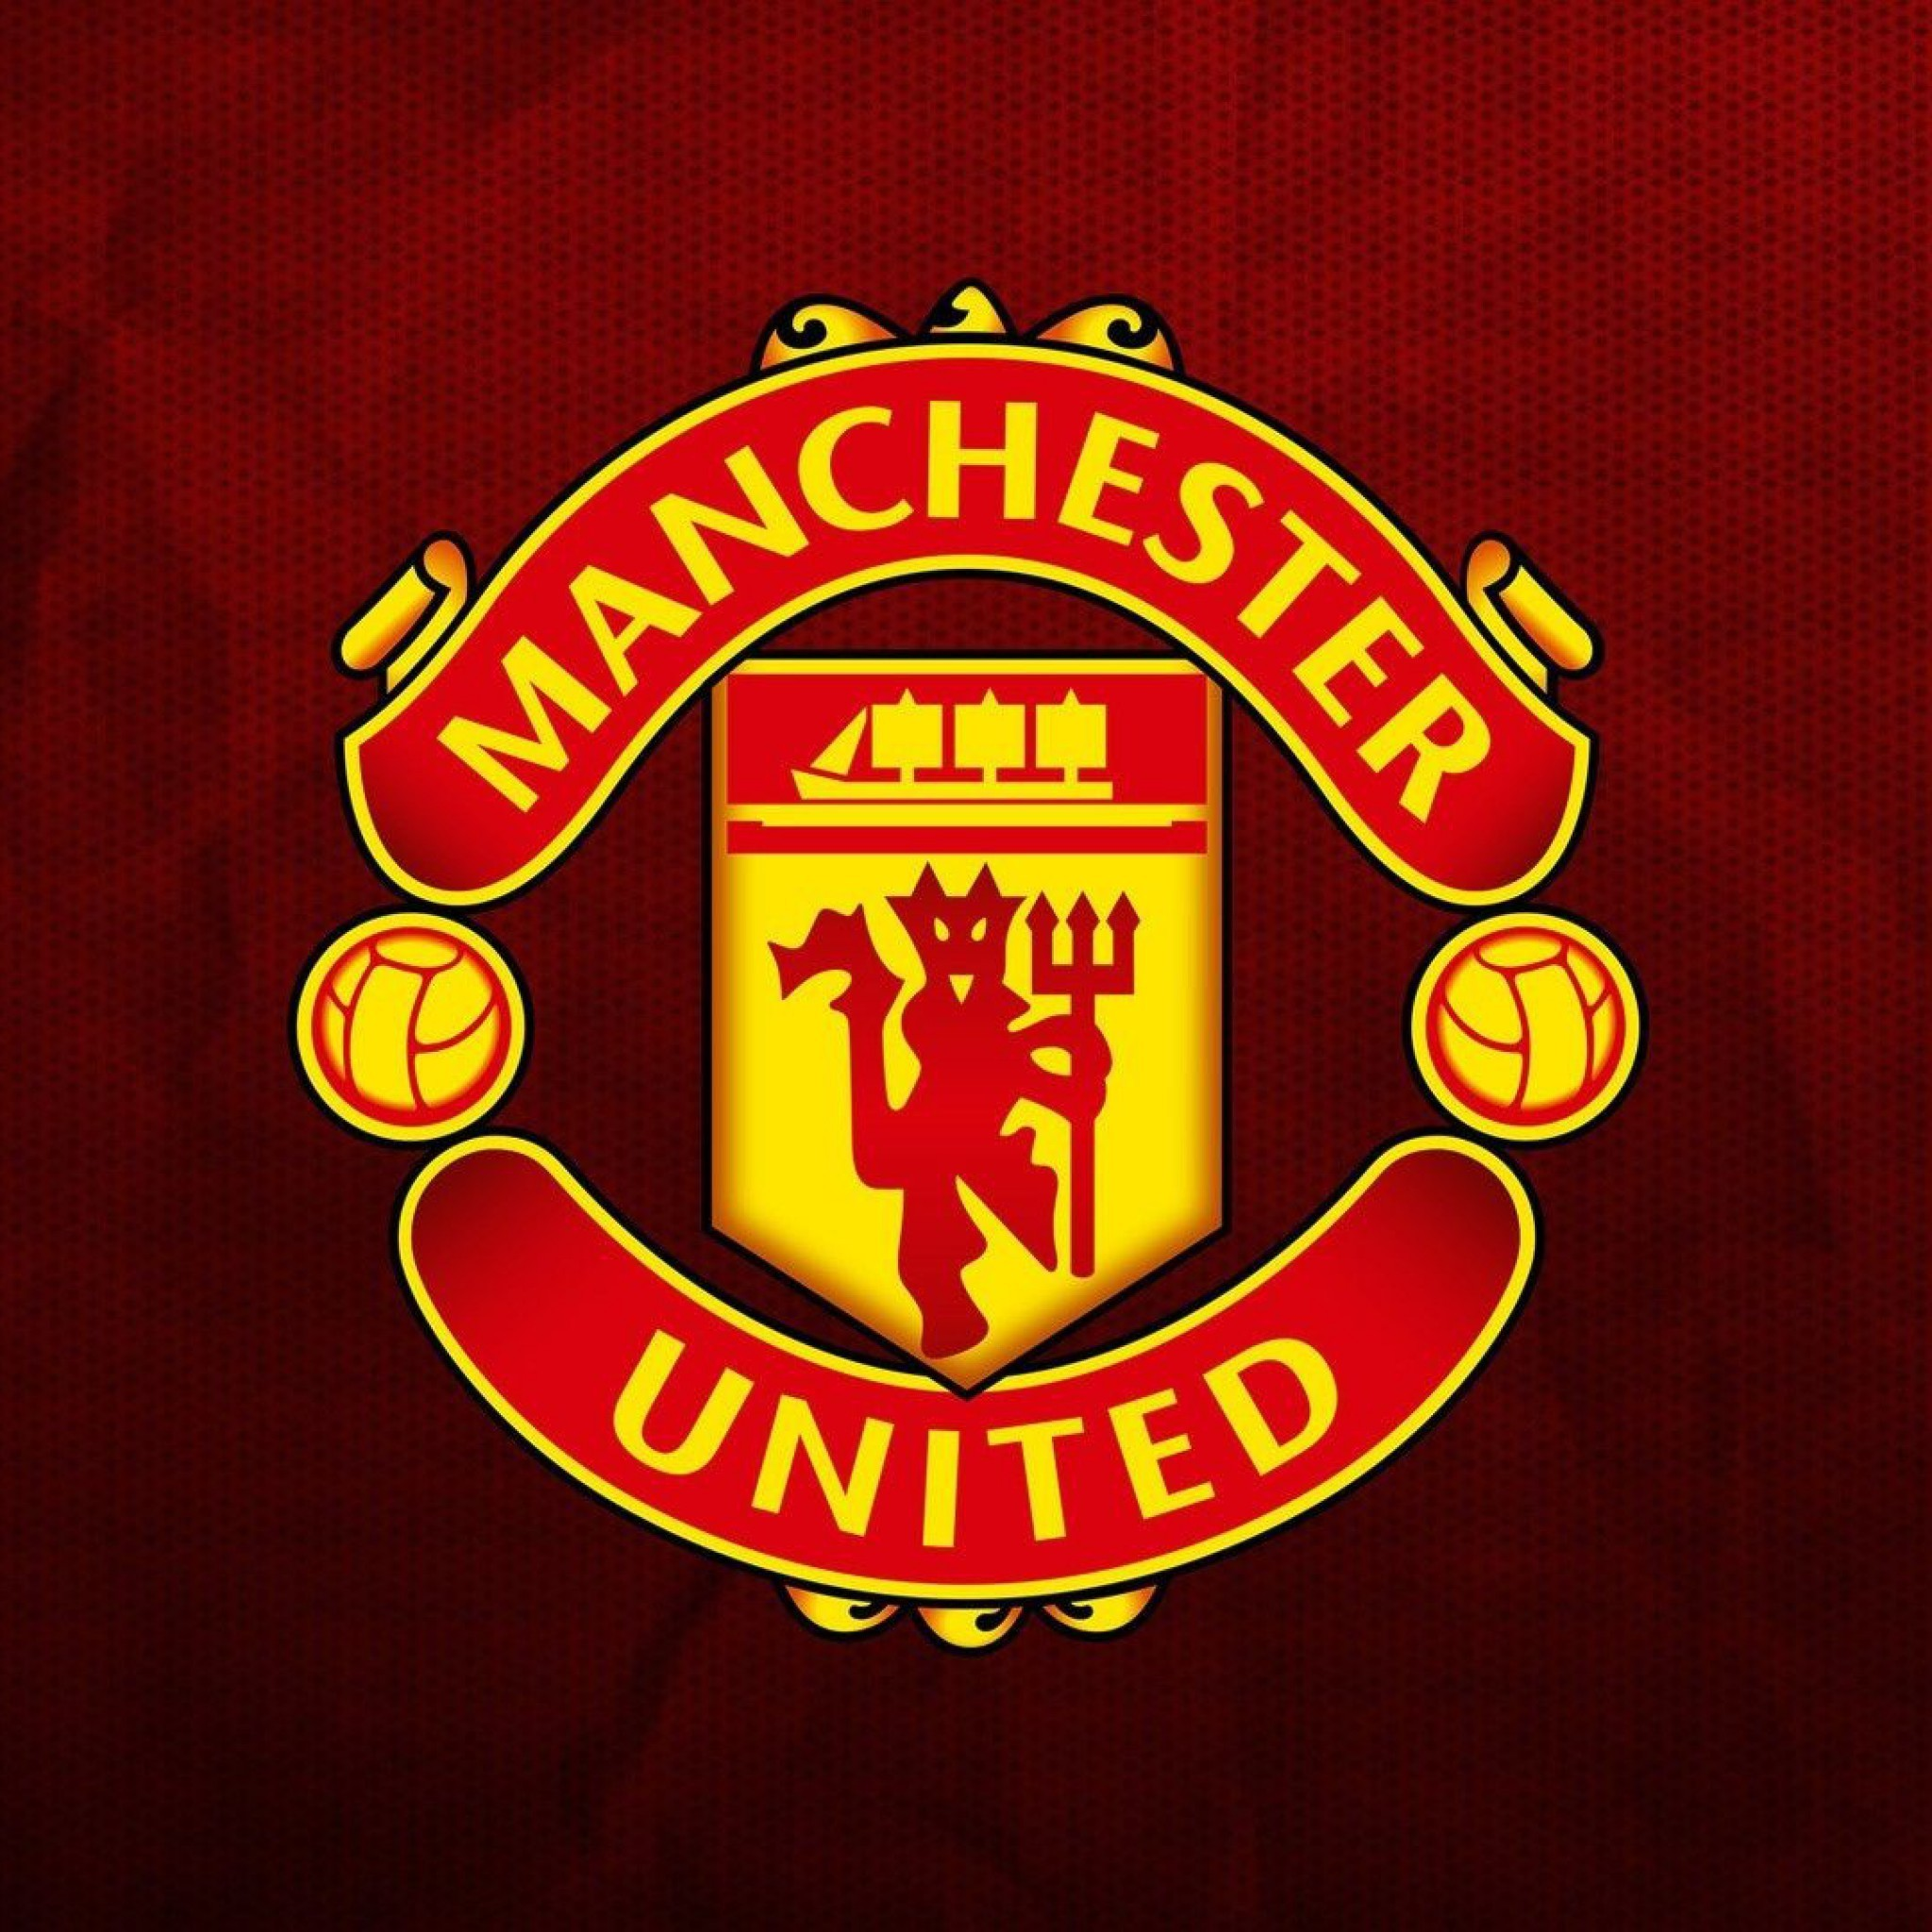 Manchester United HD Wallpaper 2018 73 images 2048x2048